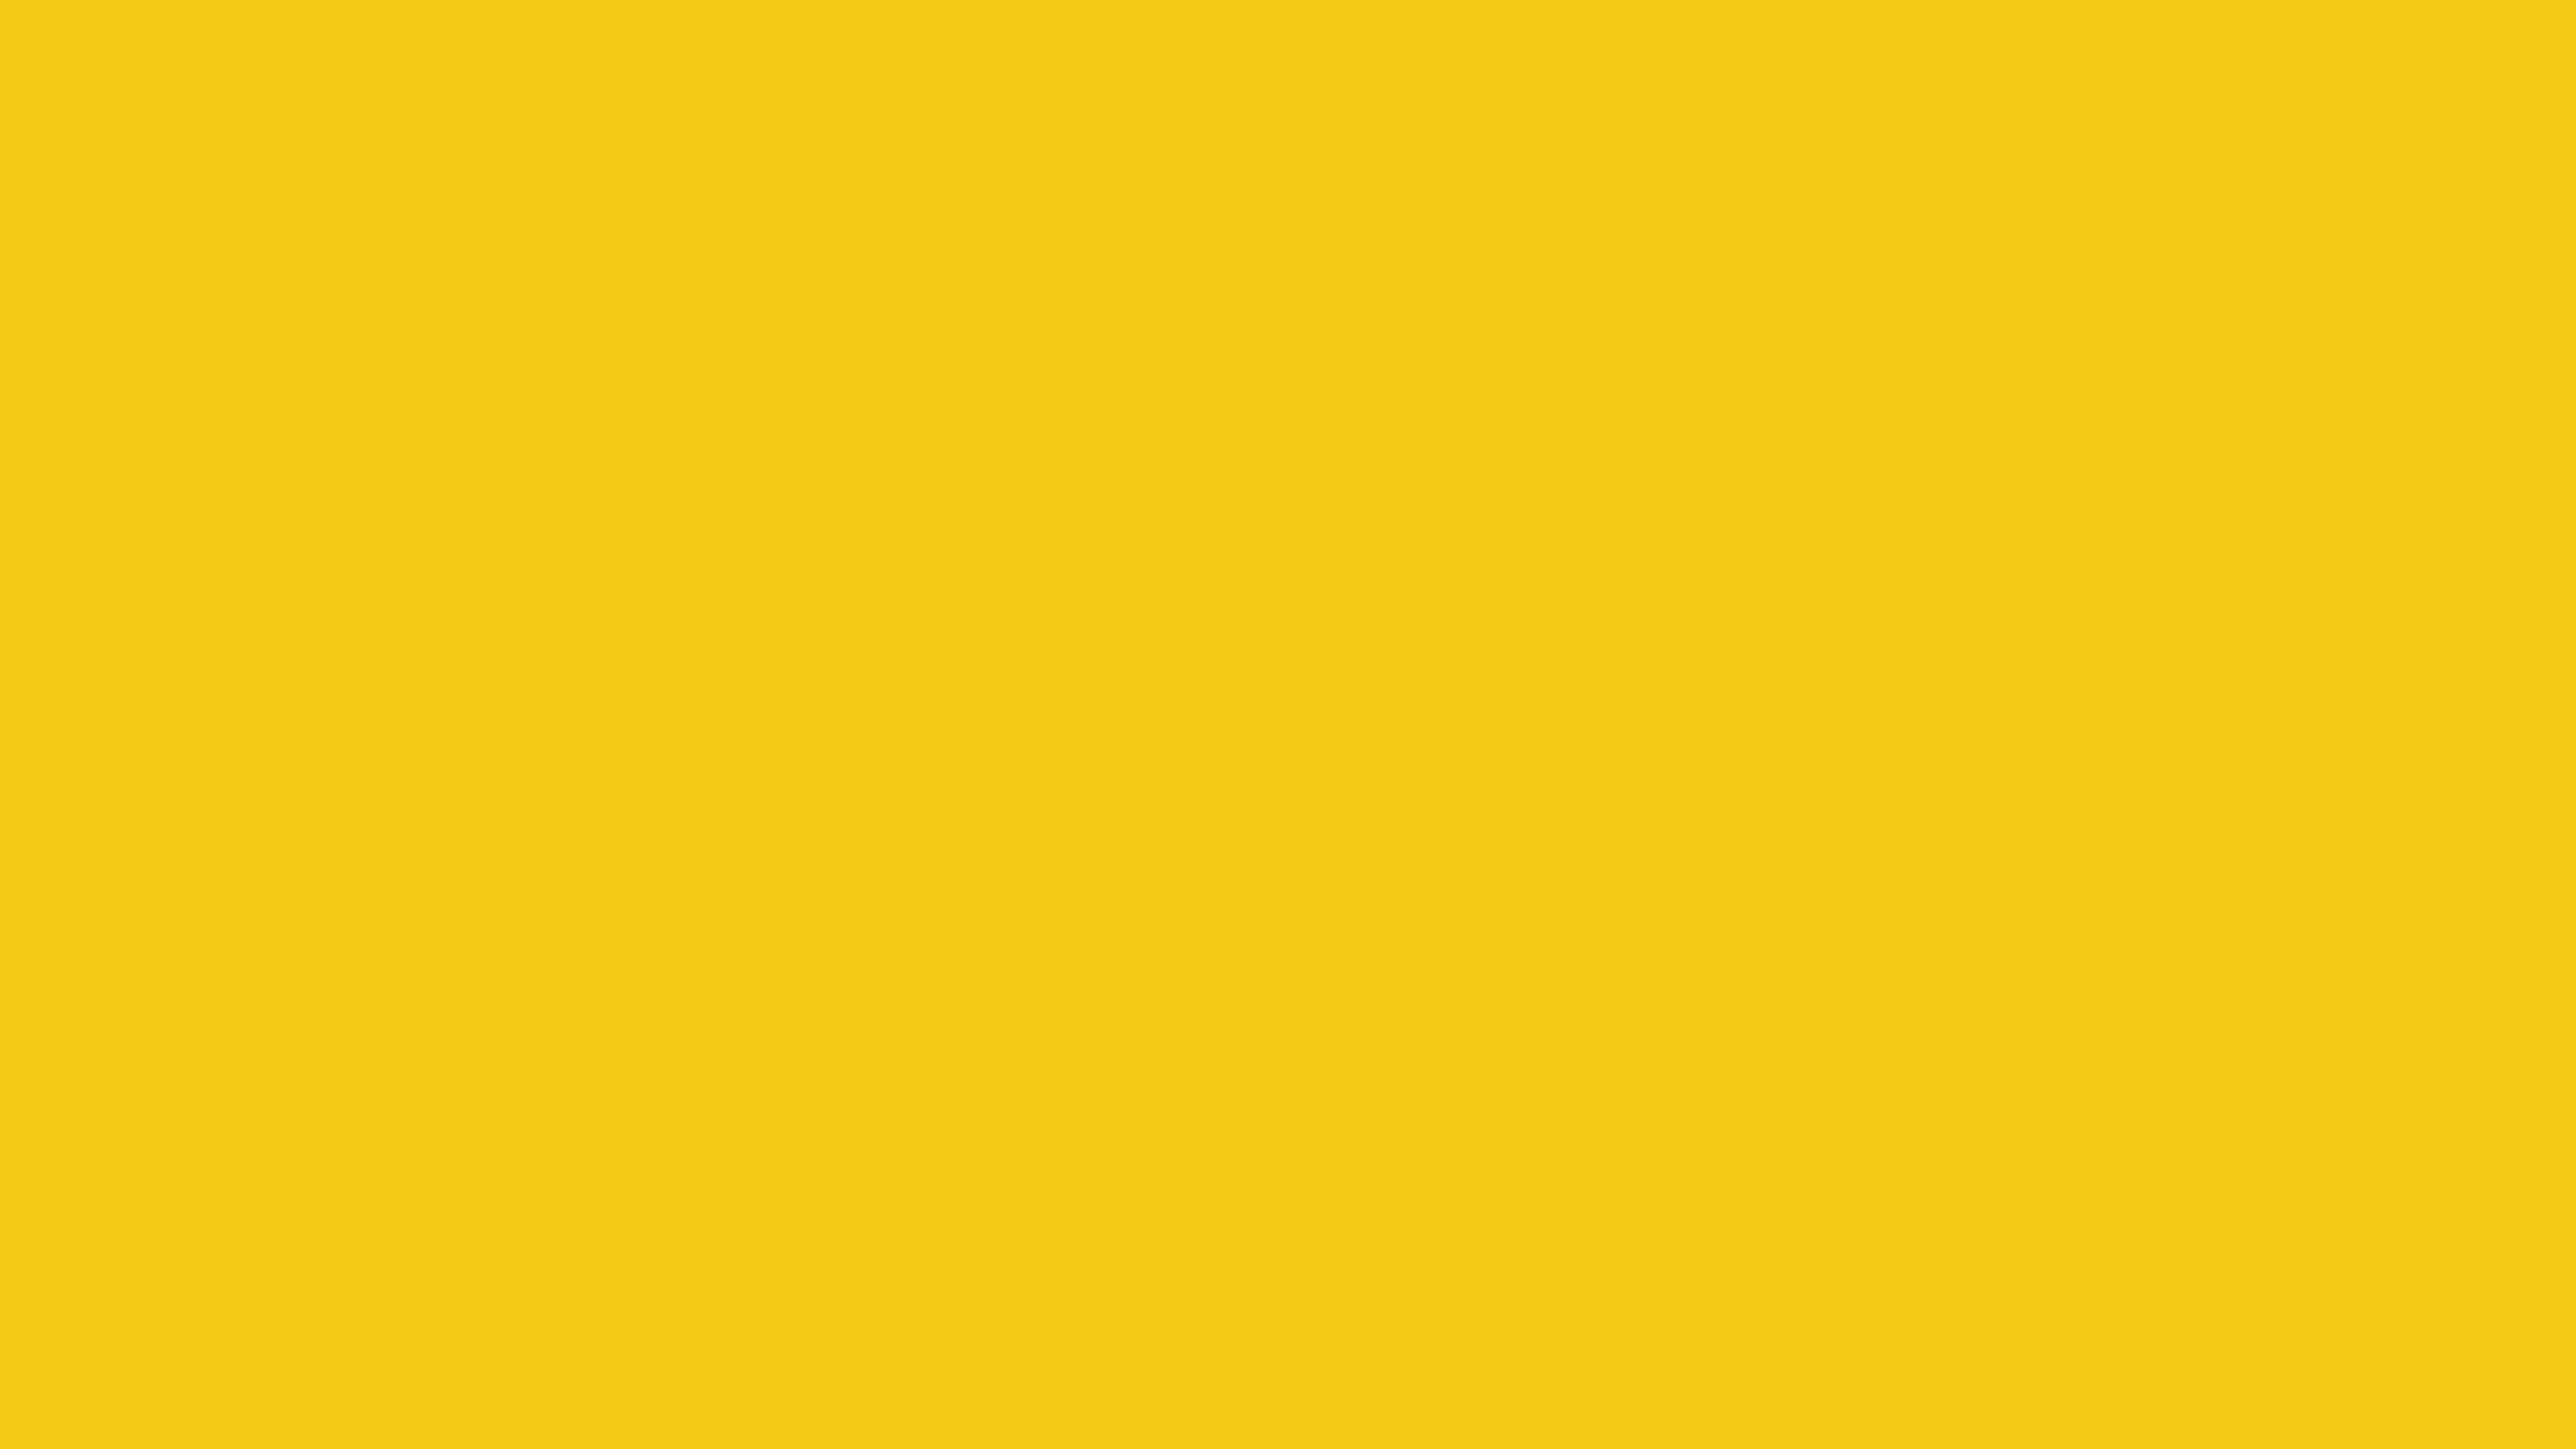 3840x2160 Jonquil Solid Color Background